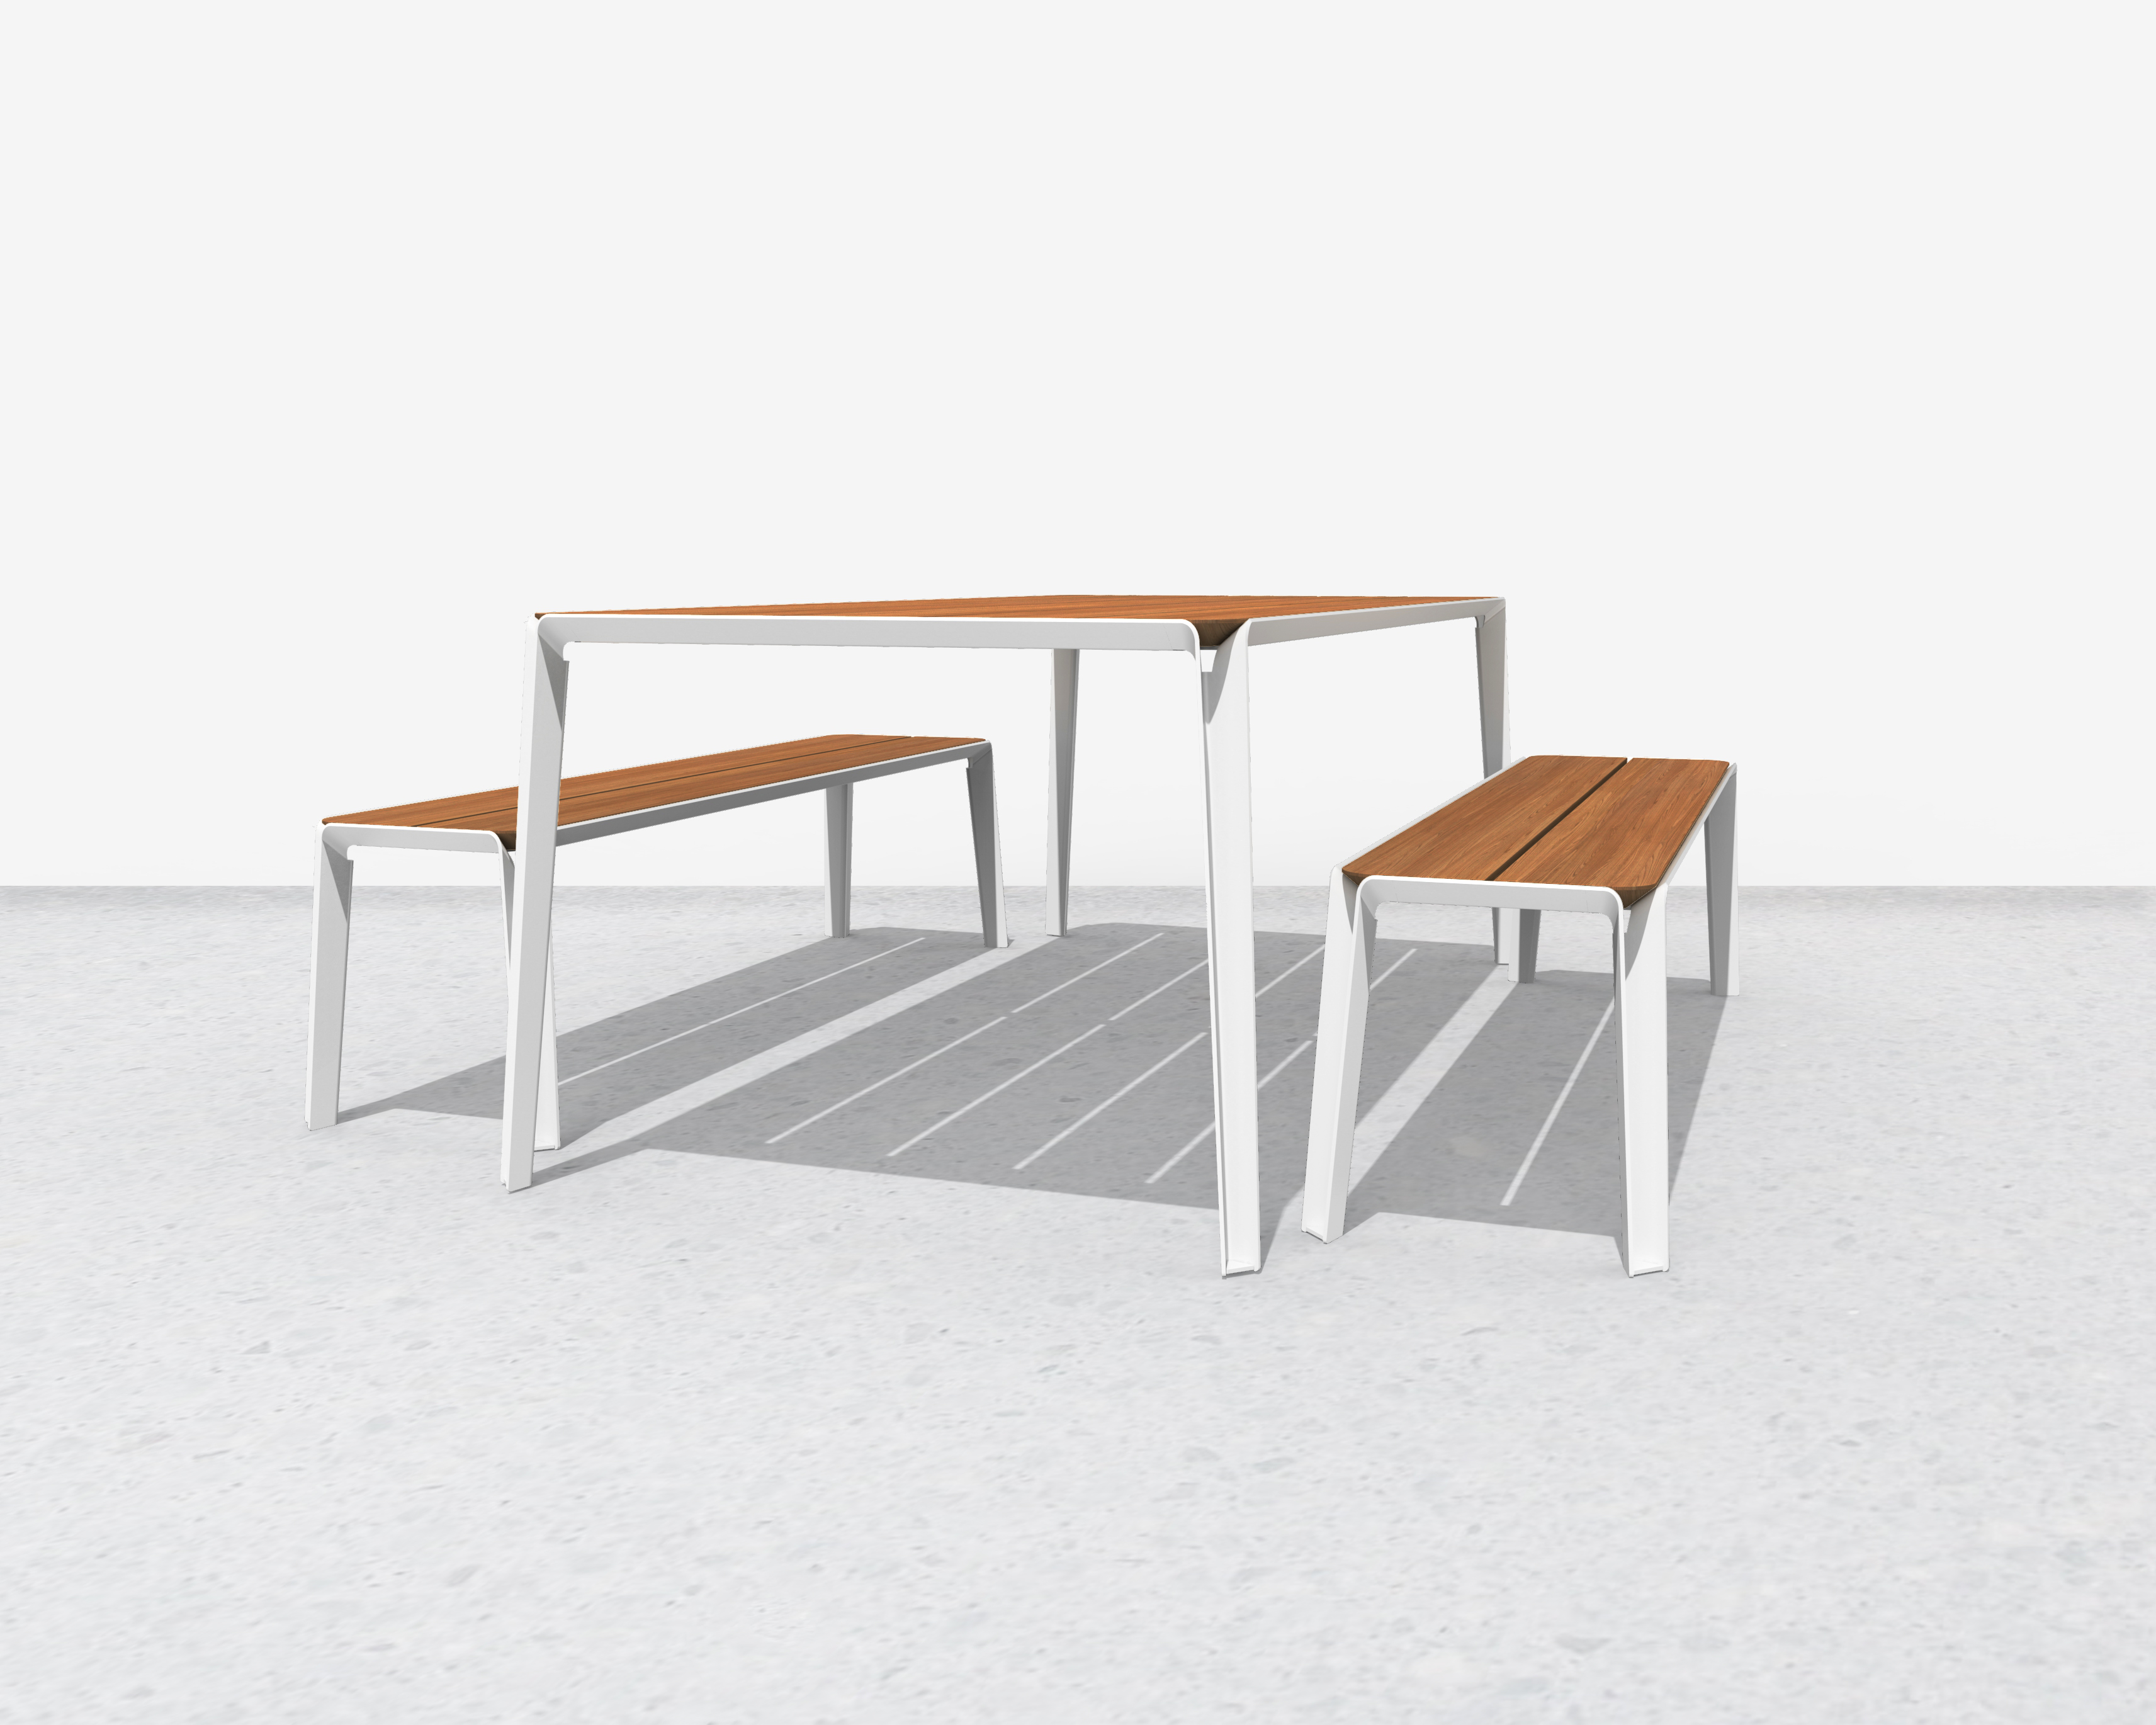 Sustainable Materials And Handcrafted Timber